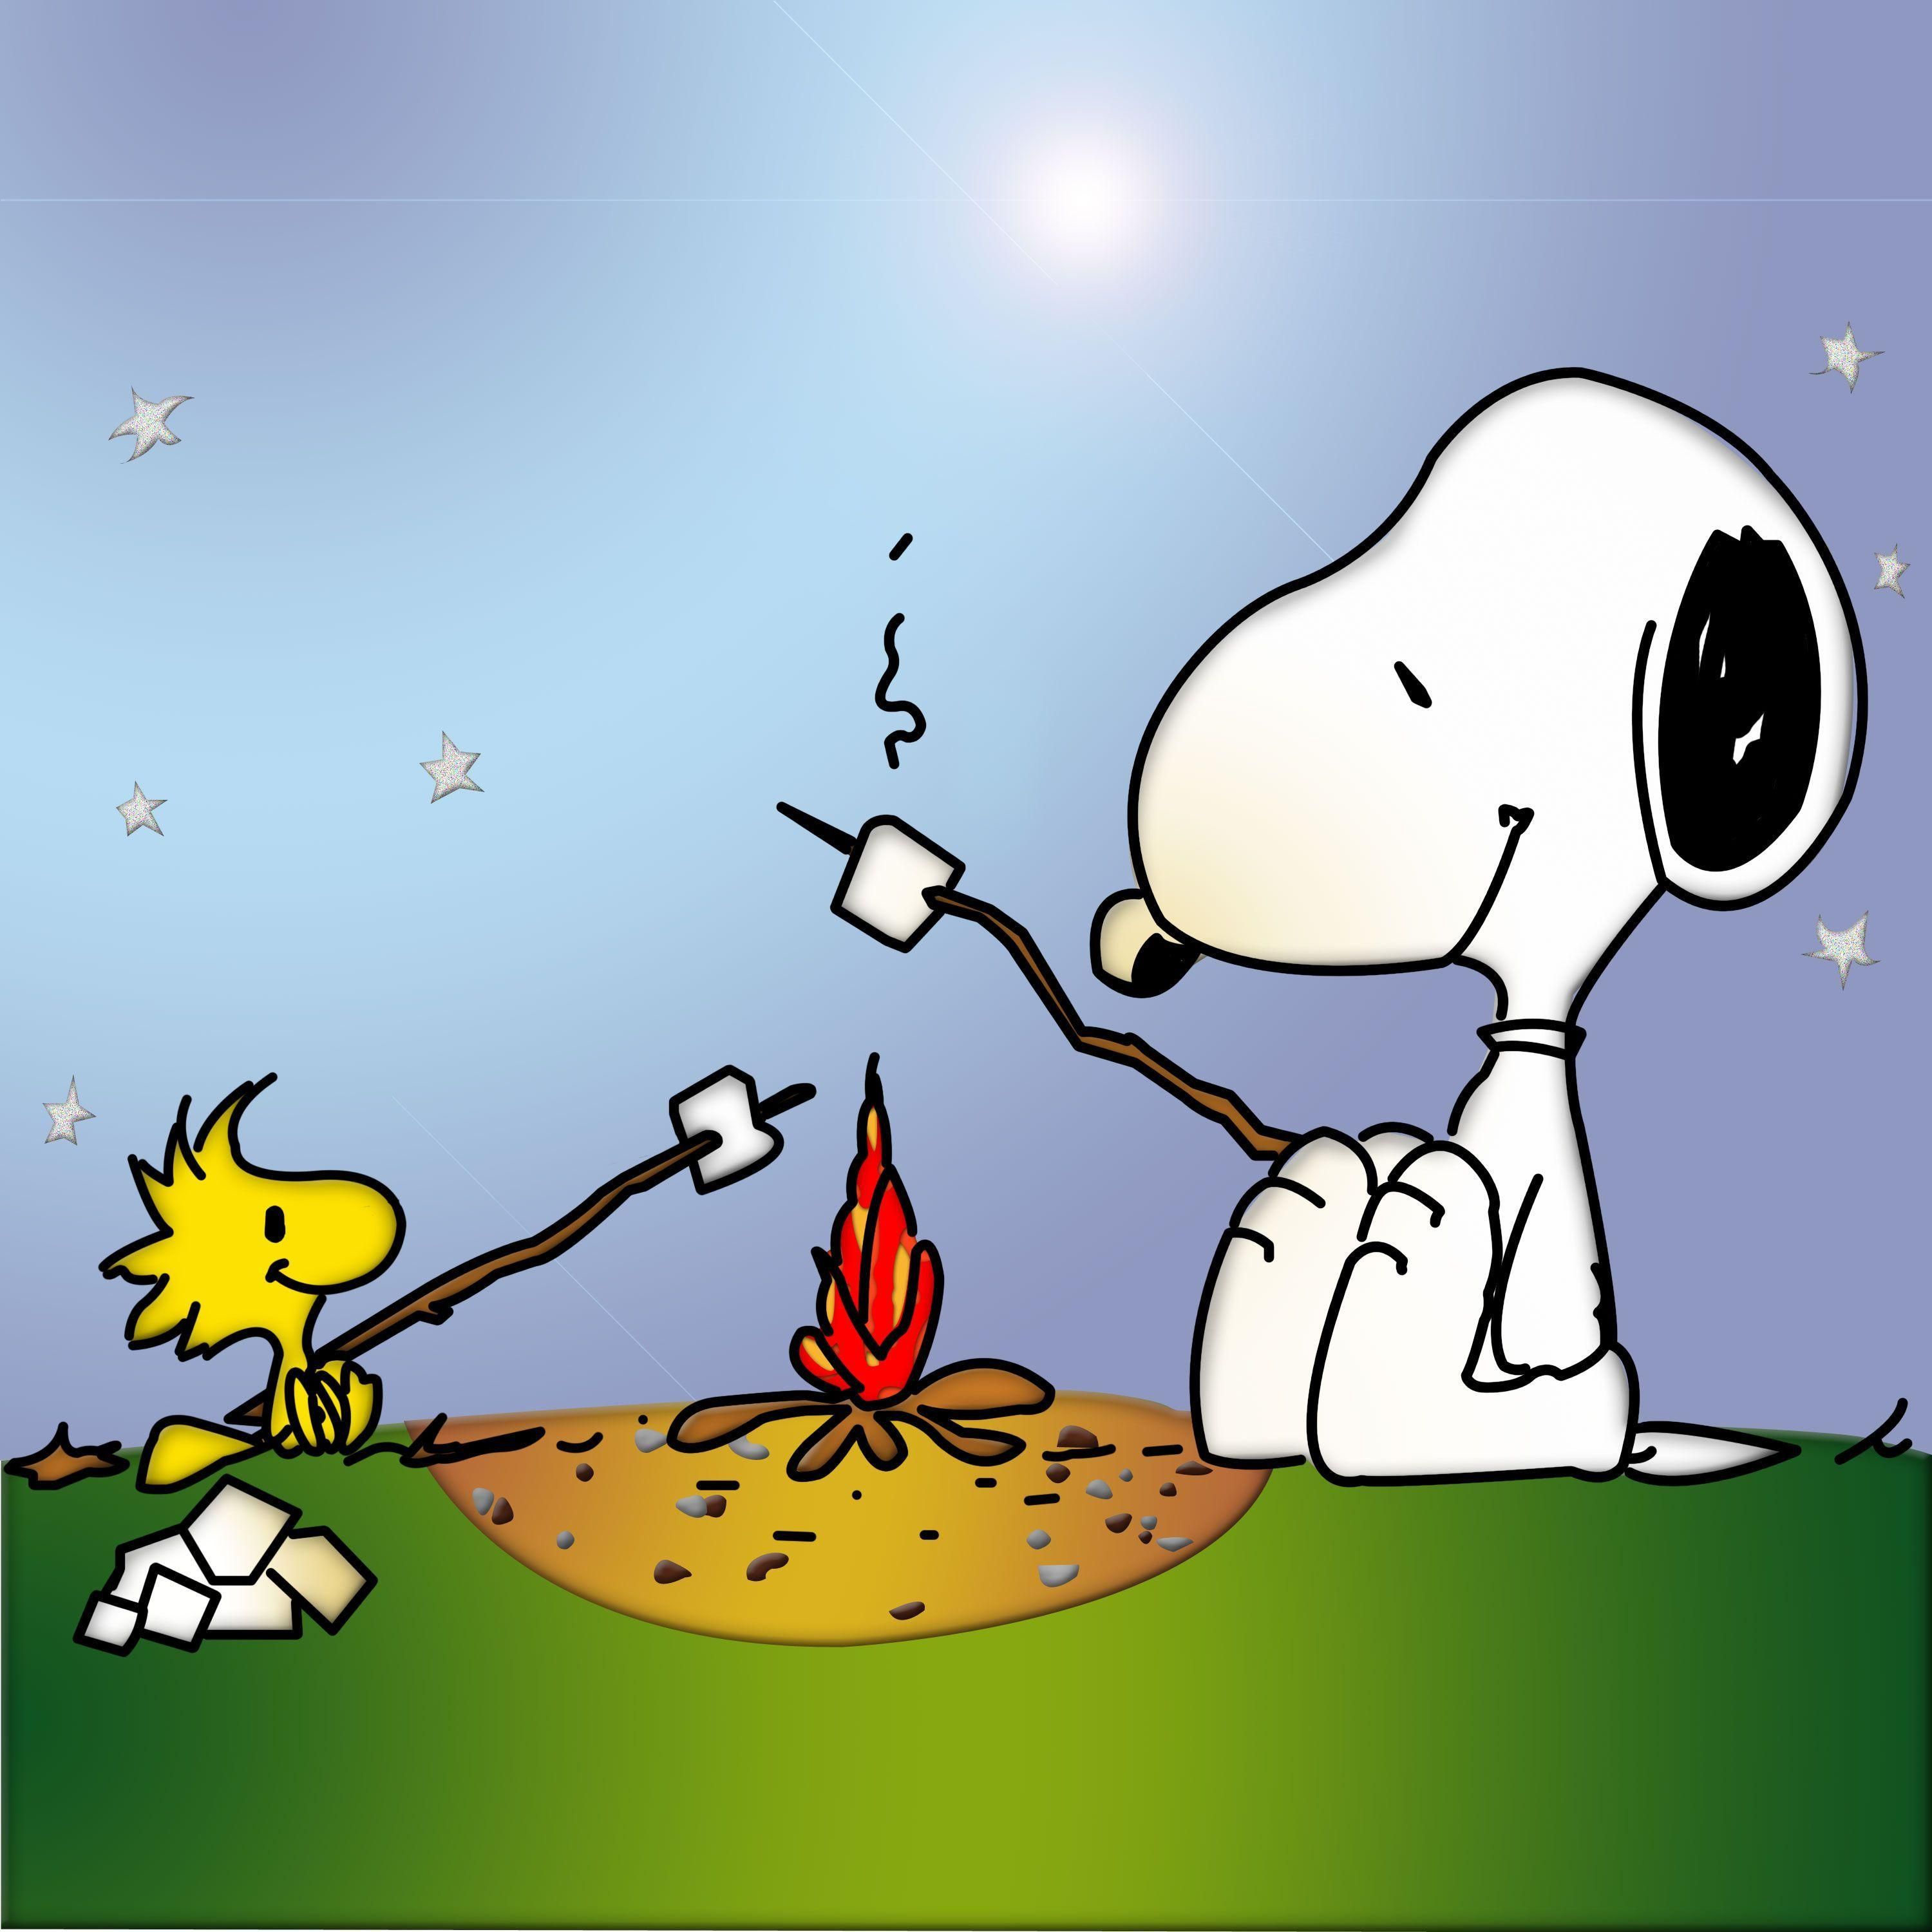 Snoopy Woodstock Wallpaper Free For Windows | Cartoons Images